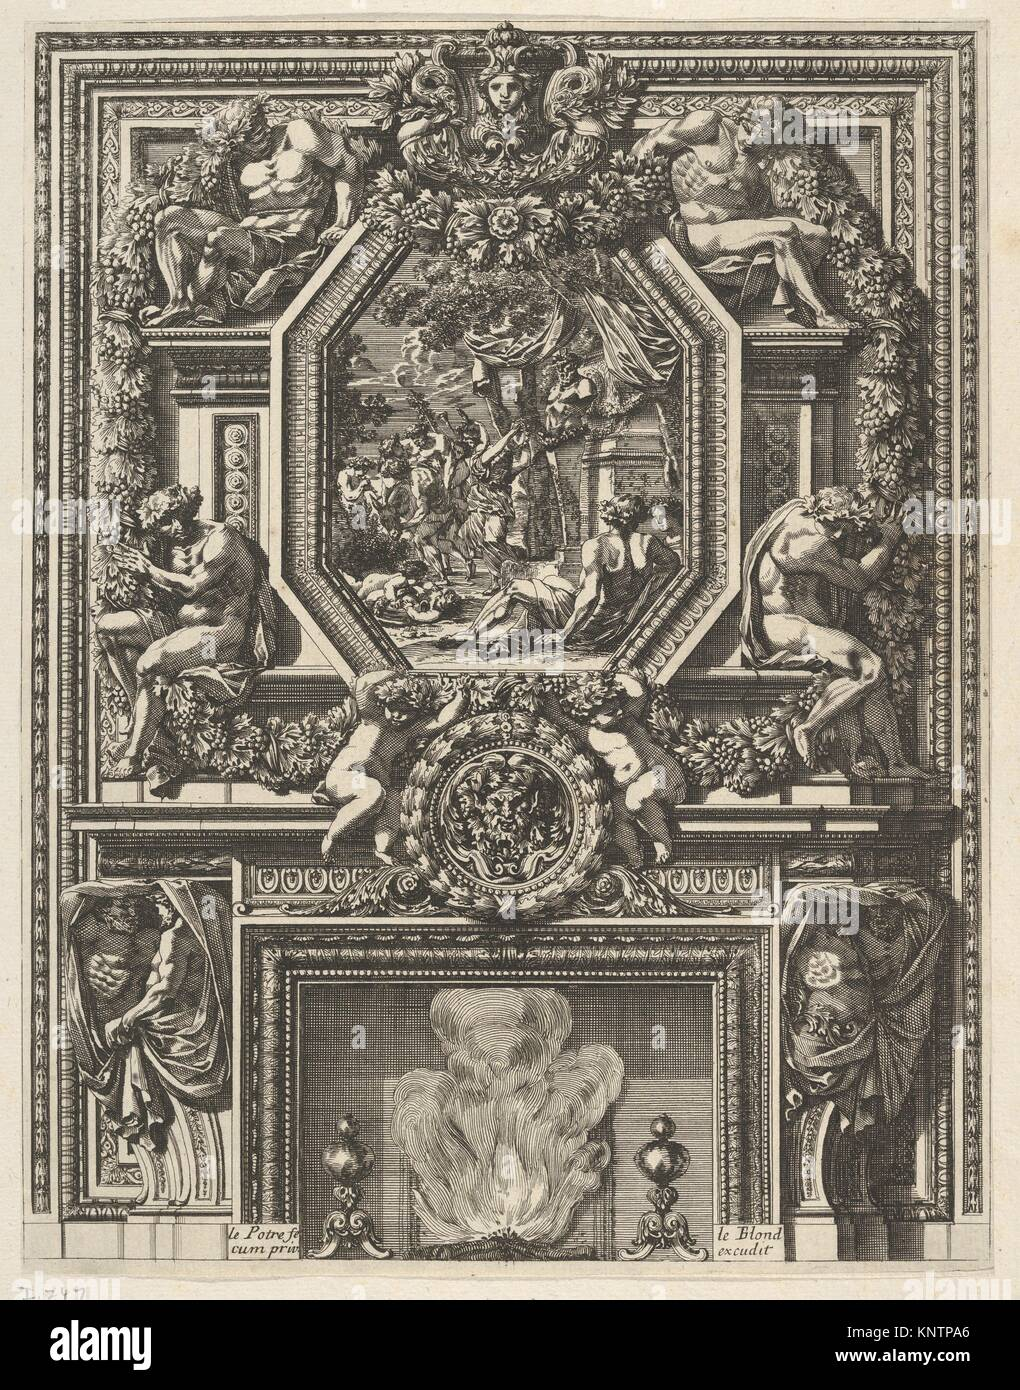 Chimney with a Bacchanal over the Mantle from 'Grandes Cheminée'. Artist and engraver: Jean Le Pautre - Stock Image